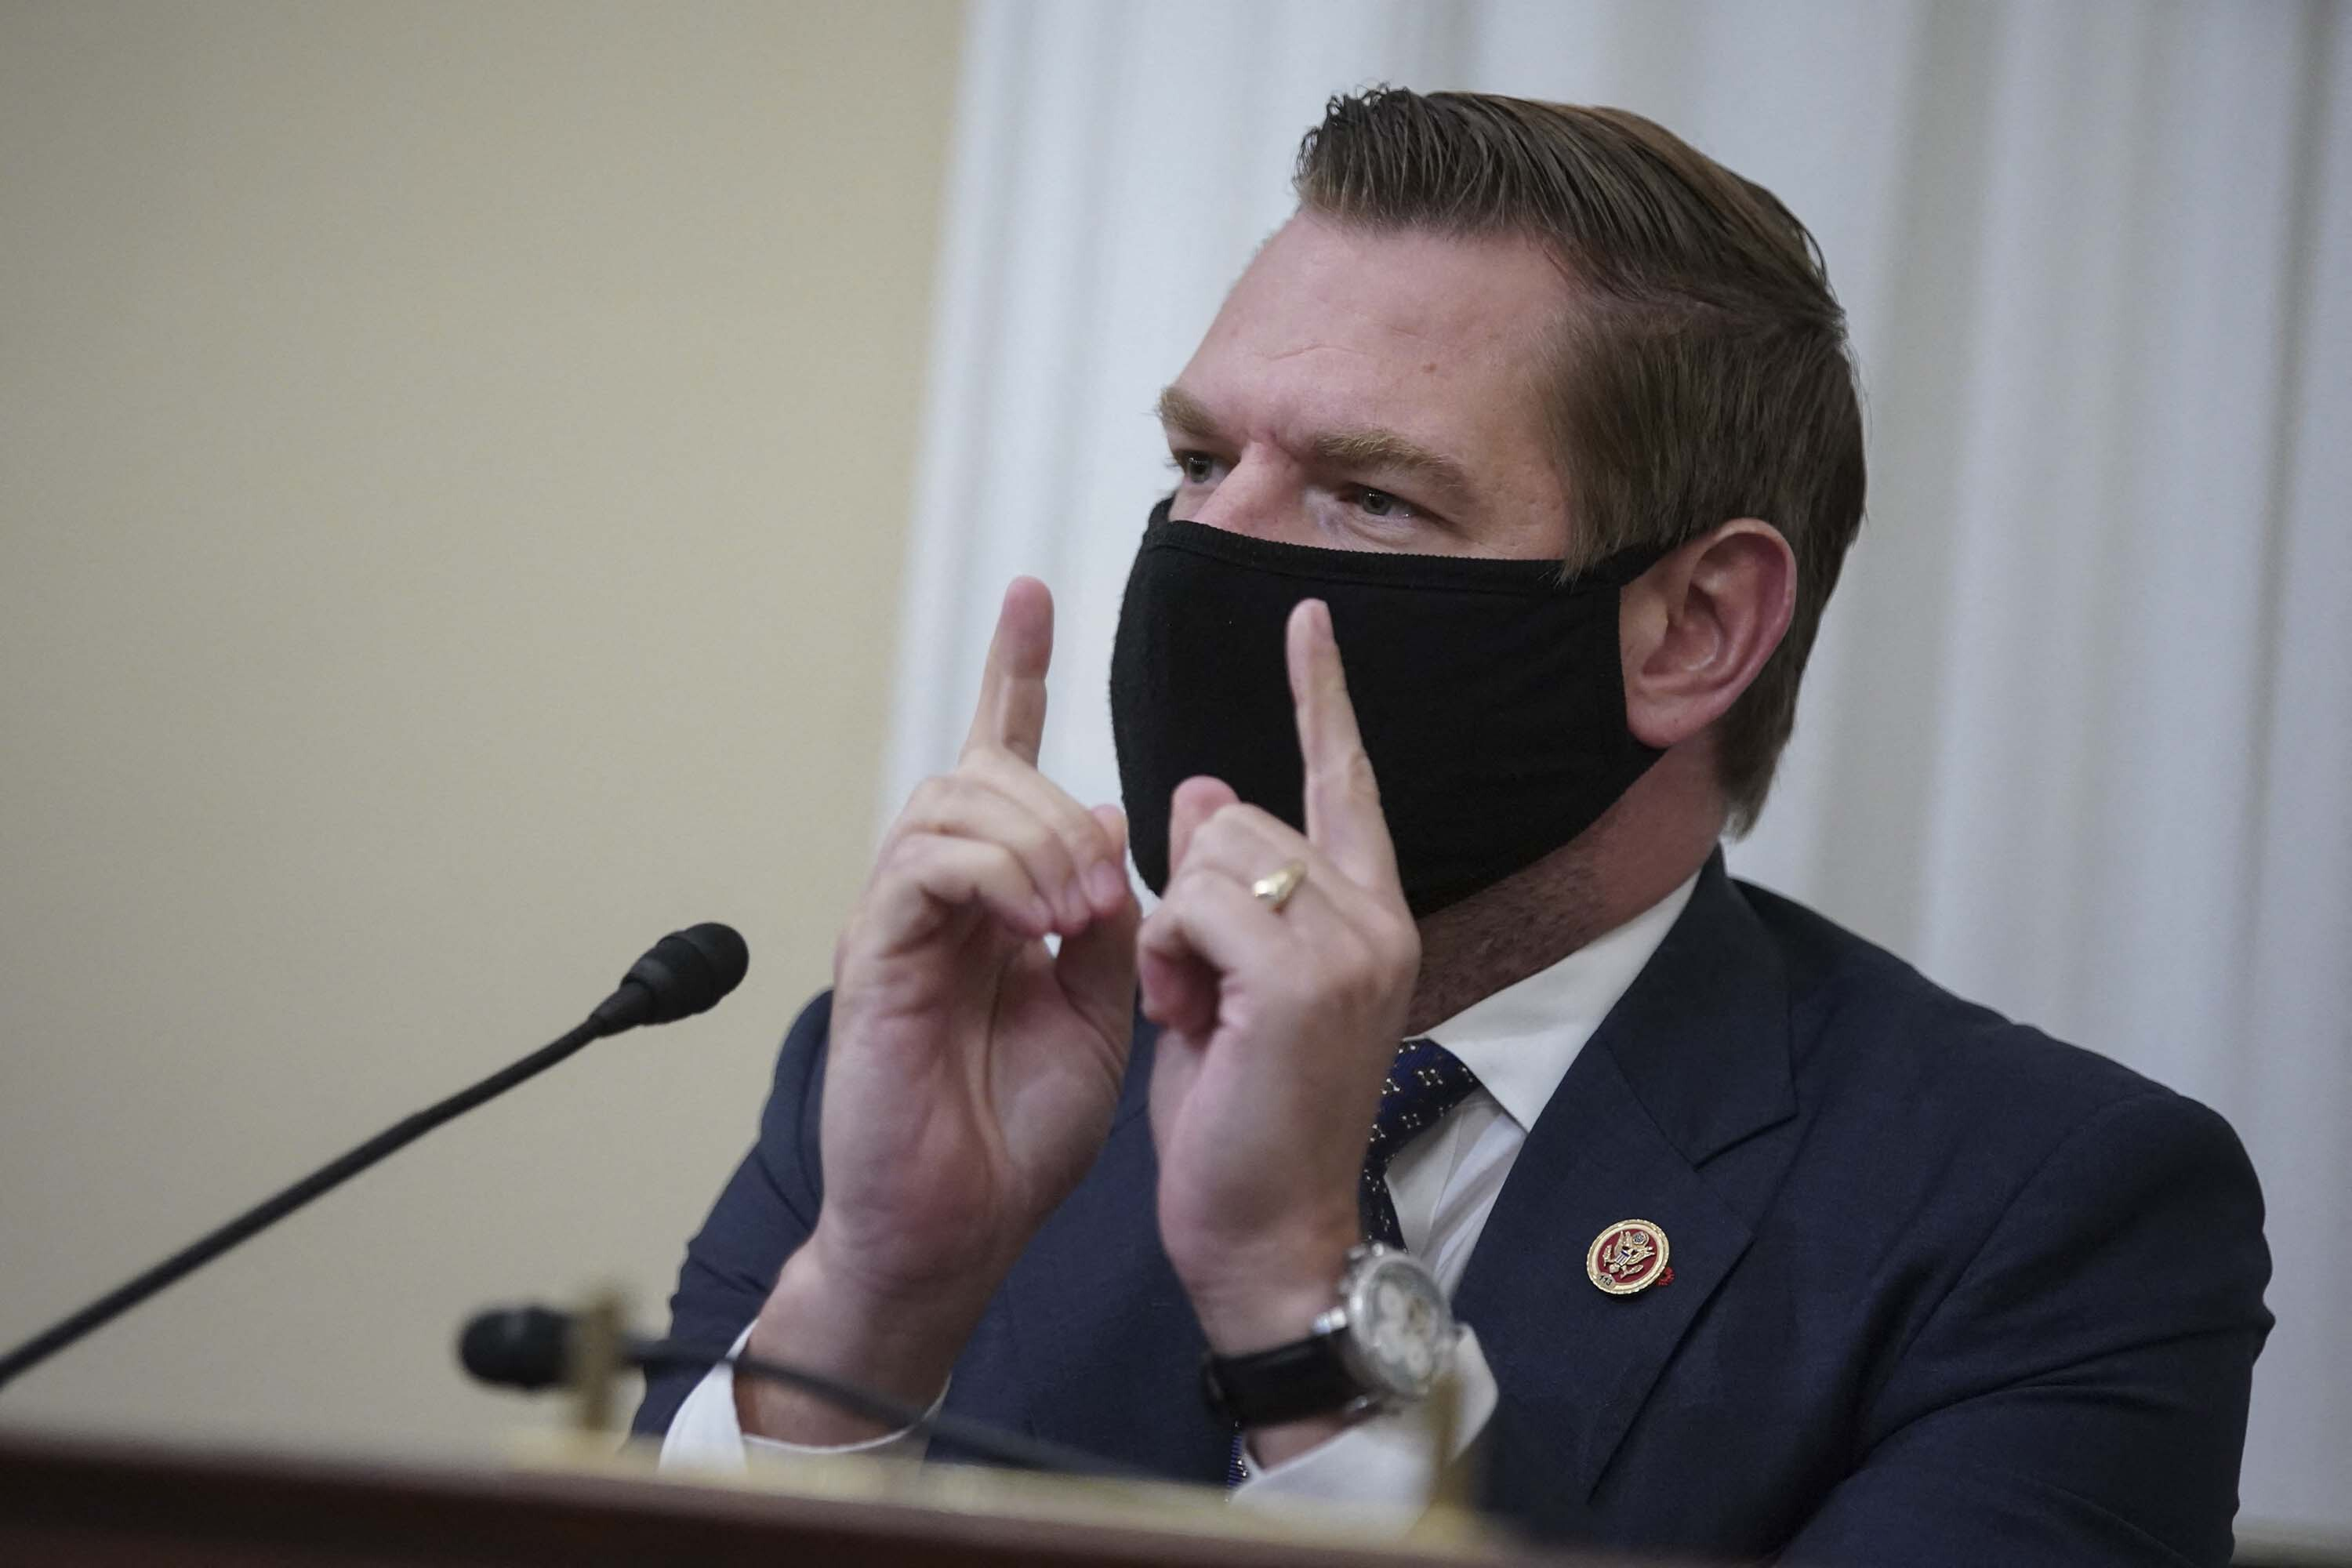 Fact check: Rep. Eric Swalwell falsely says Mitch McConnell only got 'serious' about Covid-19 vaccines after Monday stock market dip